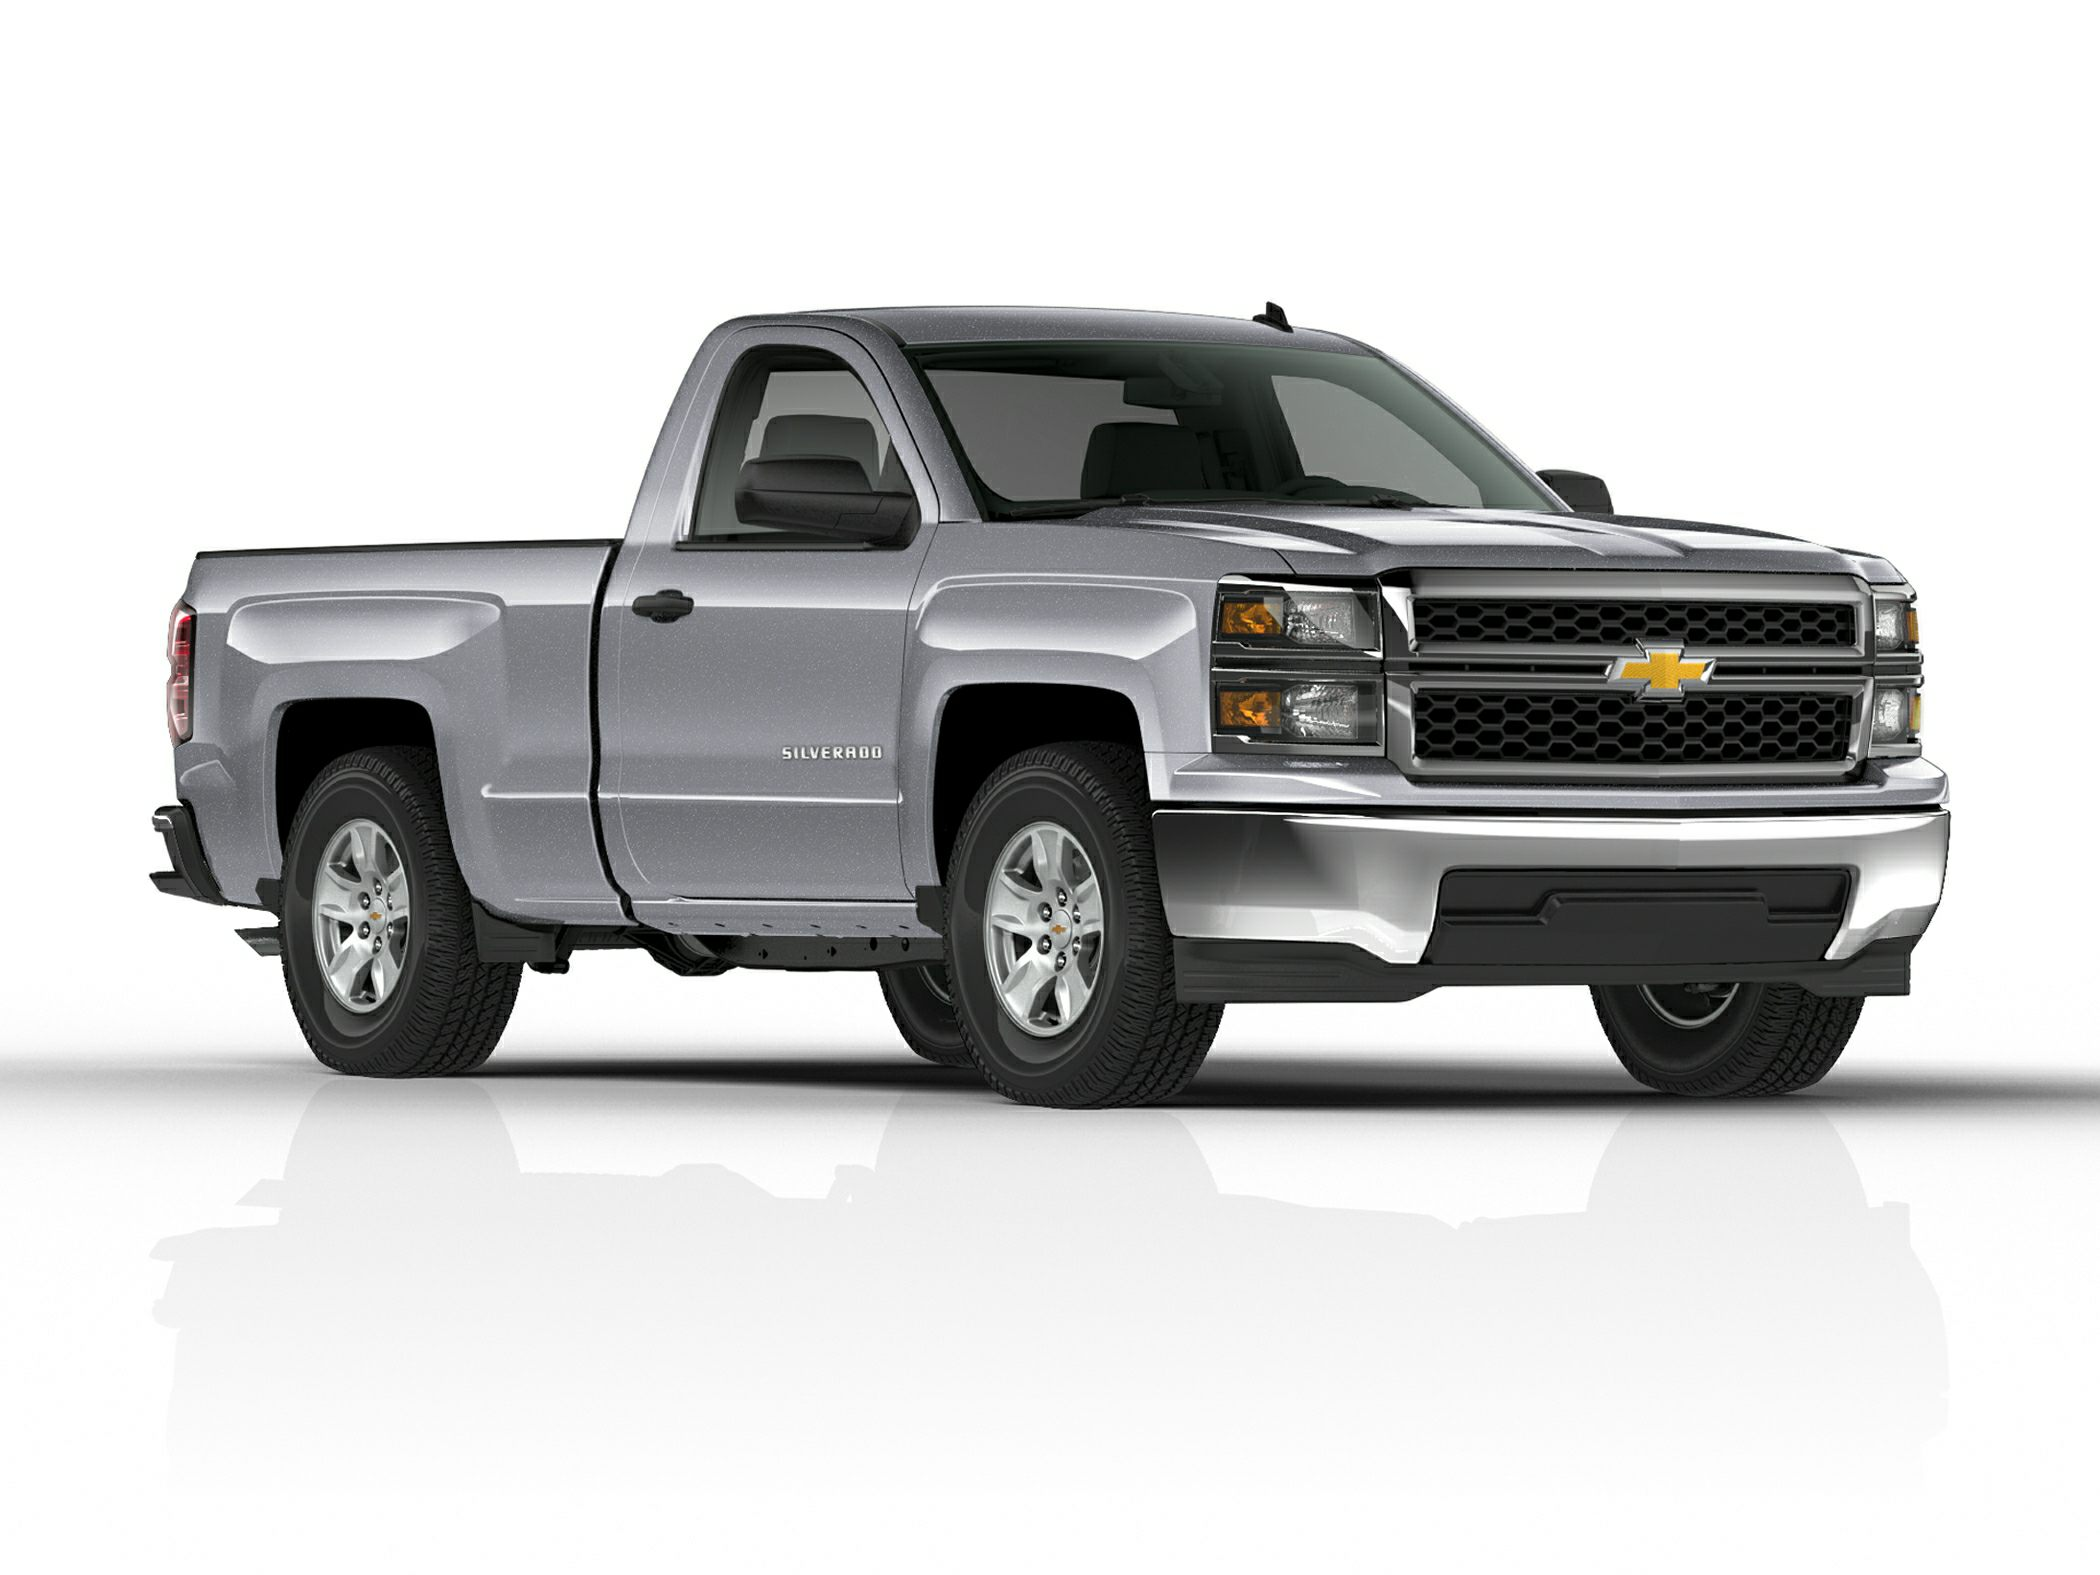 CHEVROLET Silverado 1500 Regular Cab specs & photos - 2013 ...